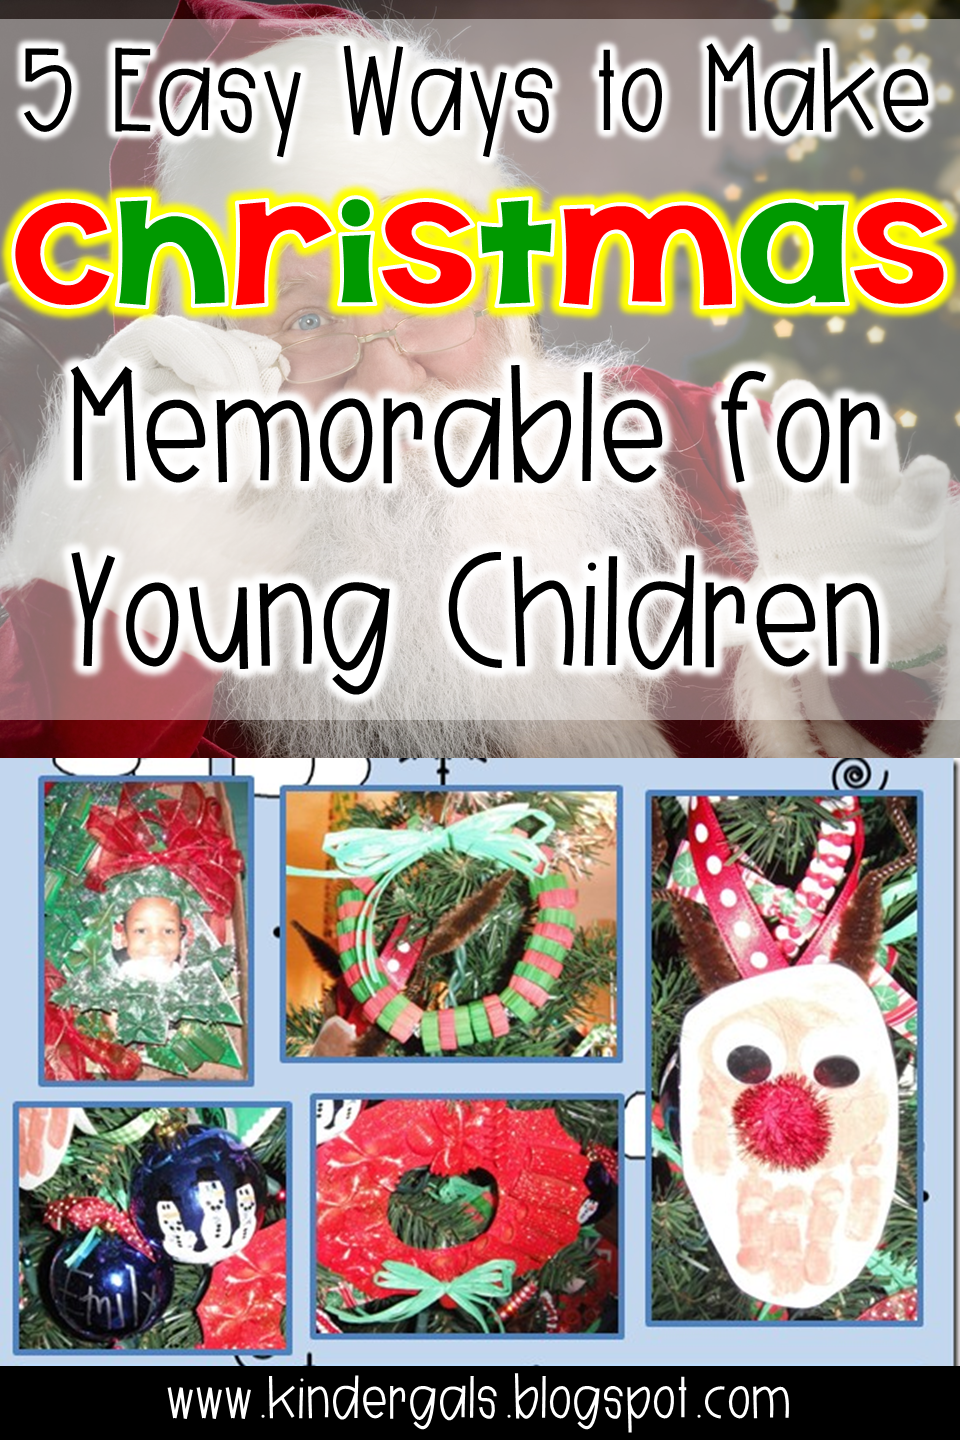 Kindergals 5 easy ways to make christmas memorable for for Christmas crafts for young children